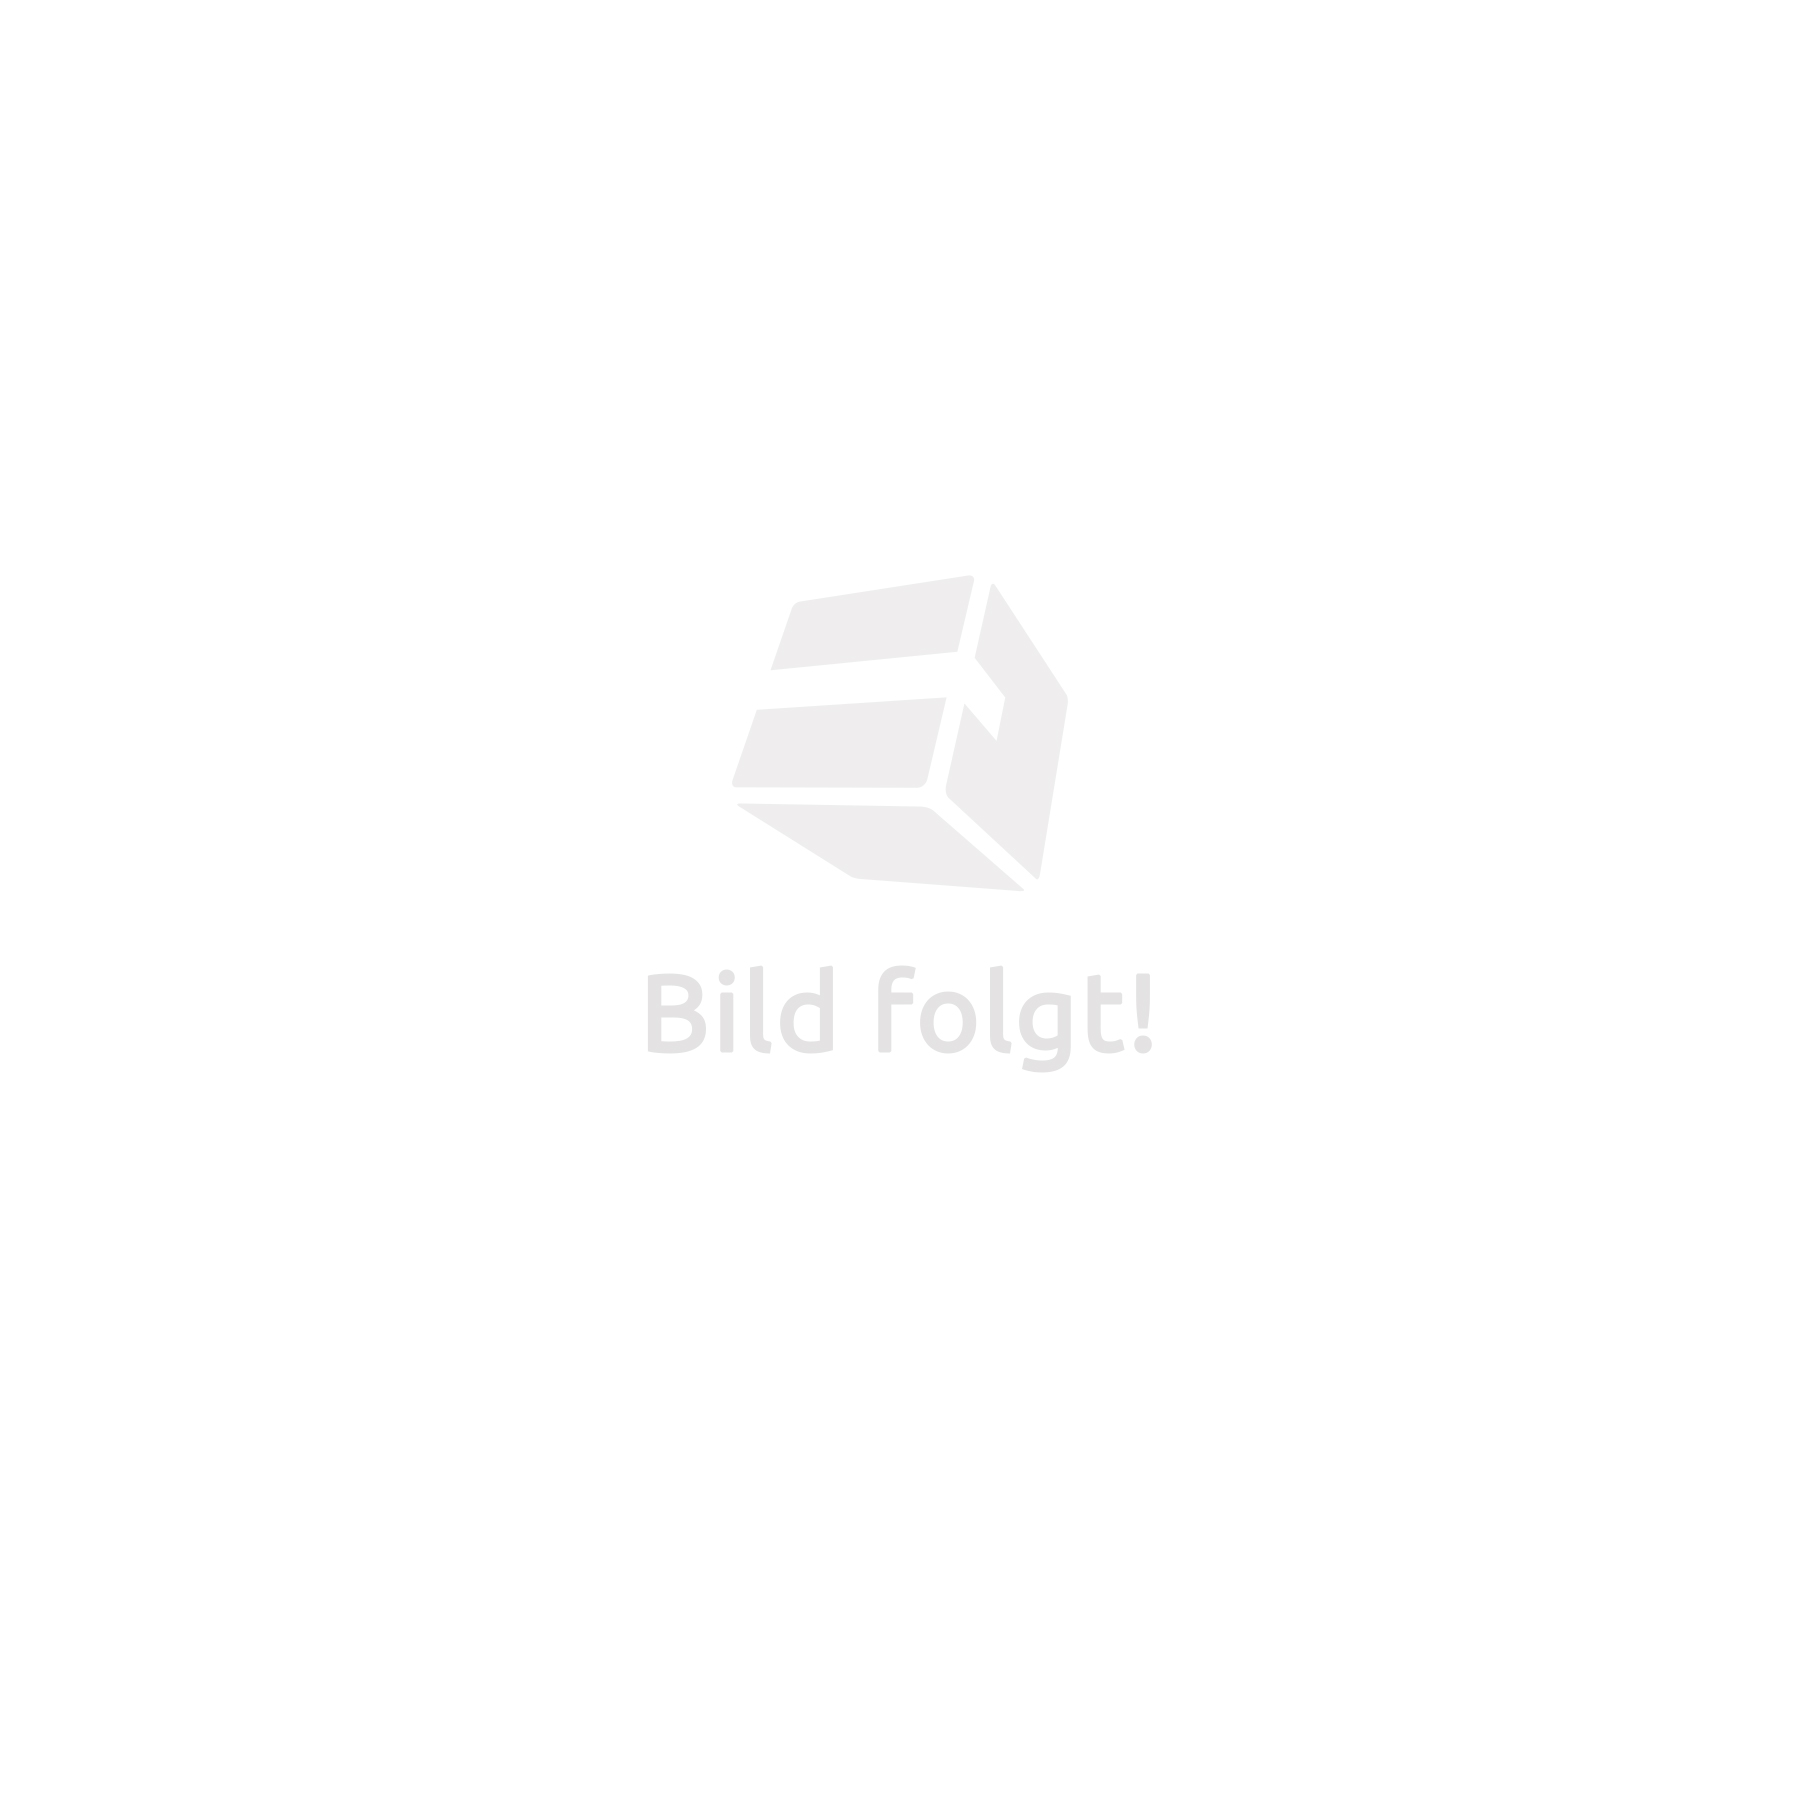 cage de musculation rack station de fitness tectake. Black Bedroom Furniture Sets. Home Design Ideas